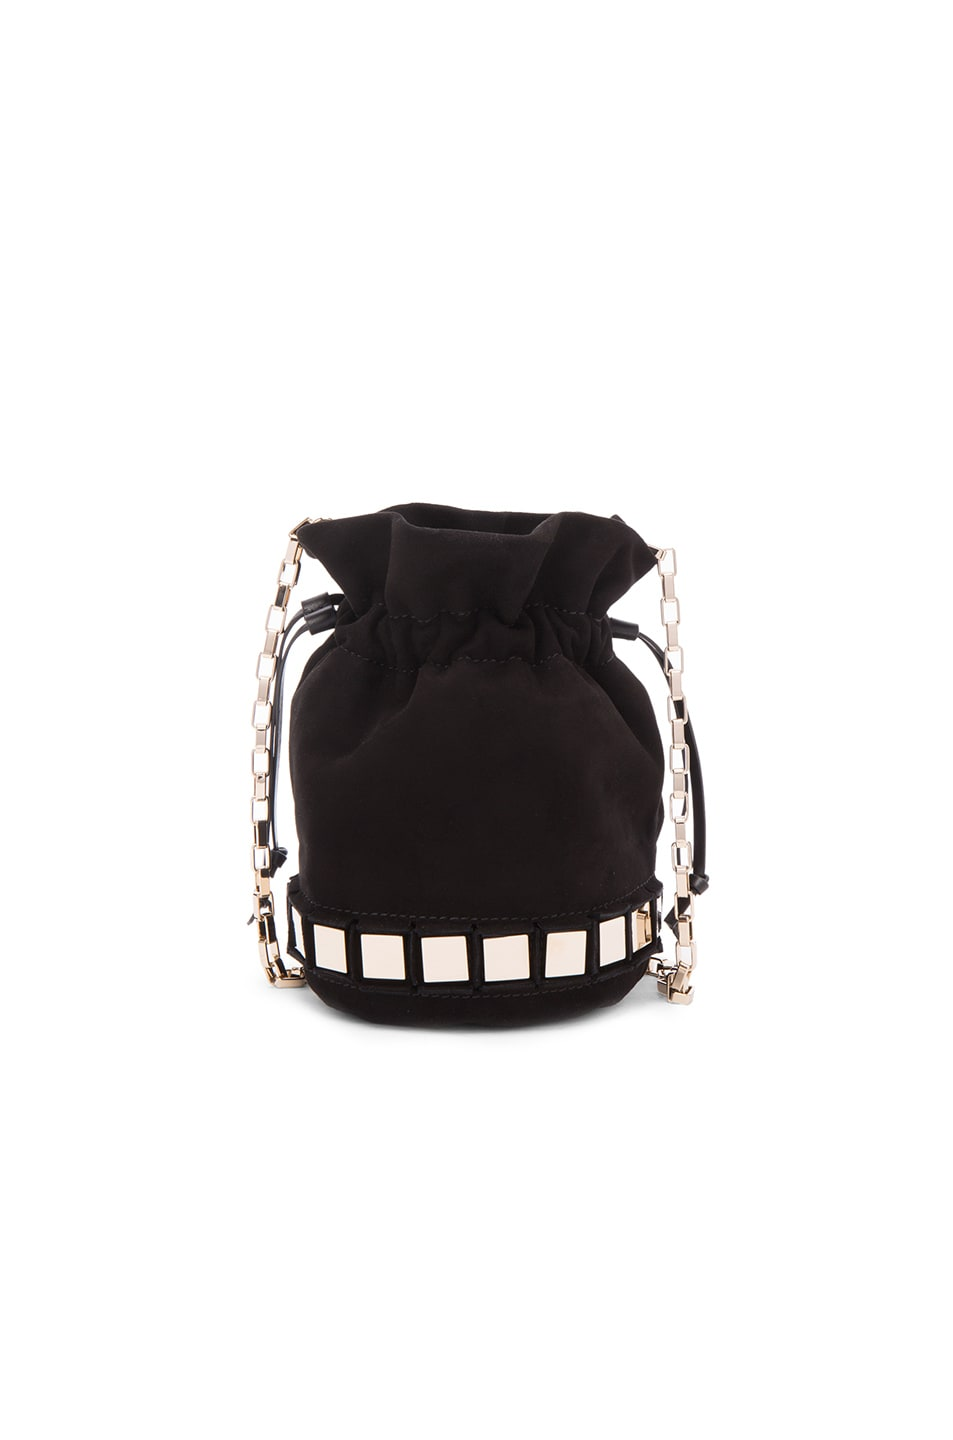 Image 1 of Tomasini Lucile Bag in Black & Light Gold